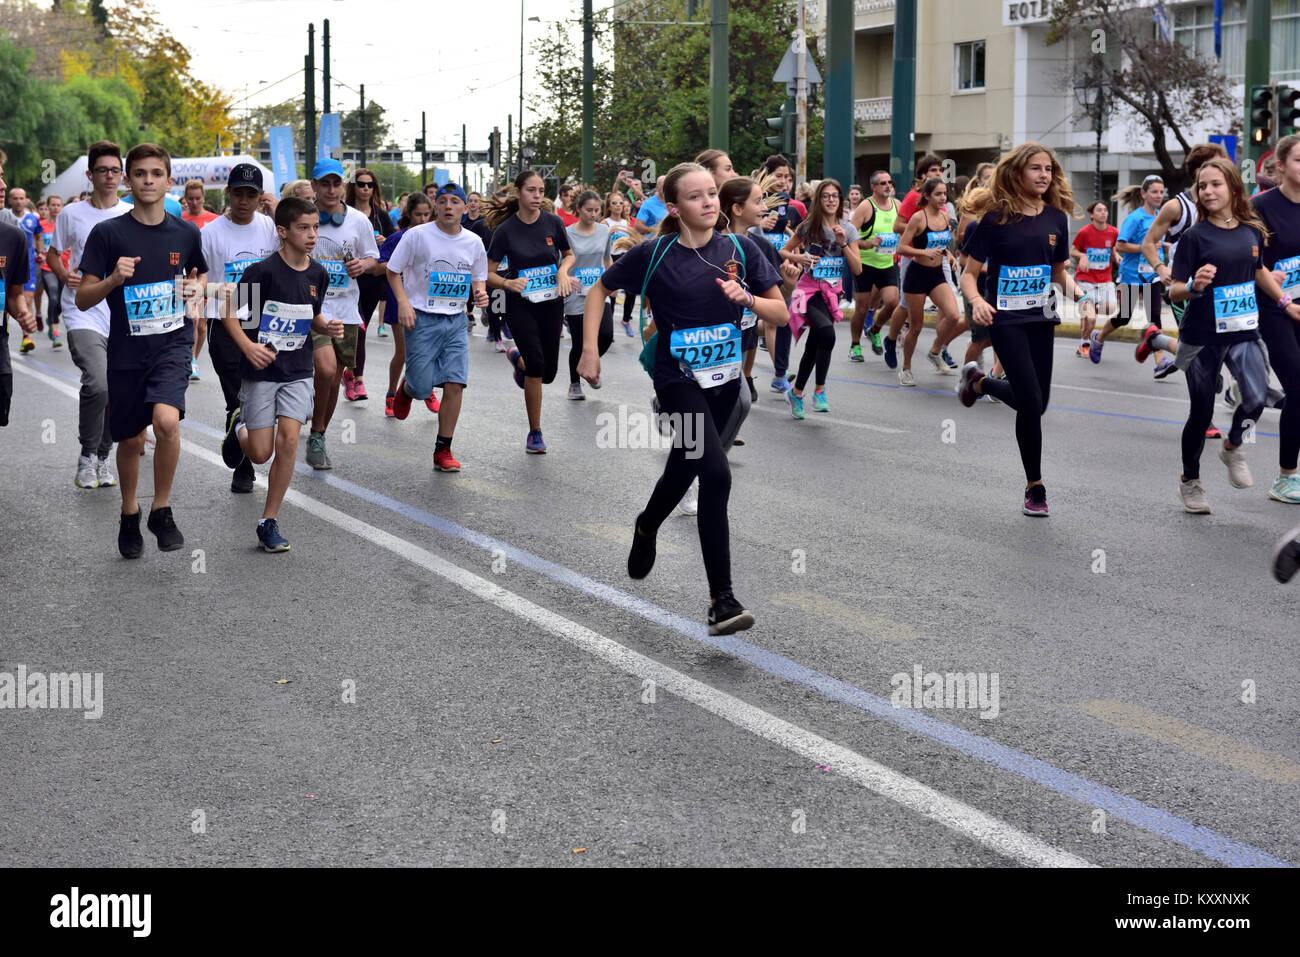 Runners starting the 5km Road Race part of the 12 Nov 2017 Athens Authentic Marathon, Athens, Greece - Stock Image